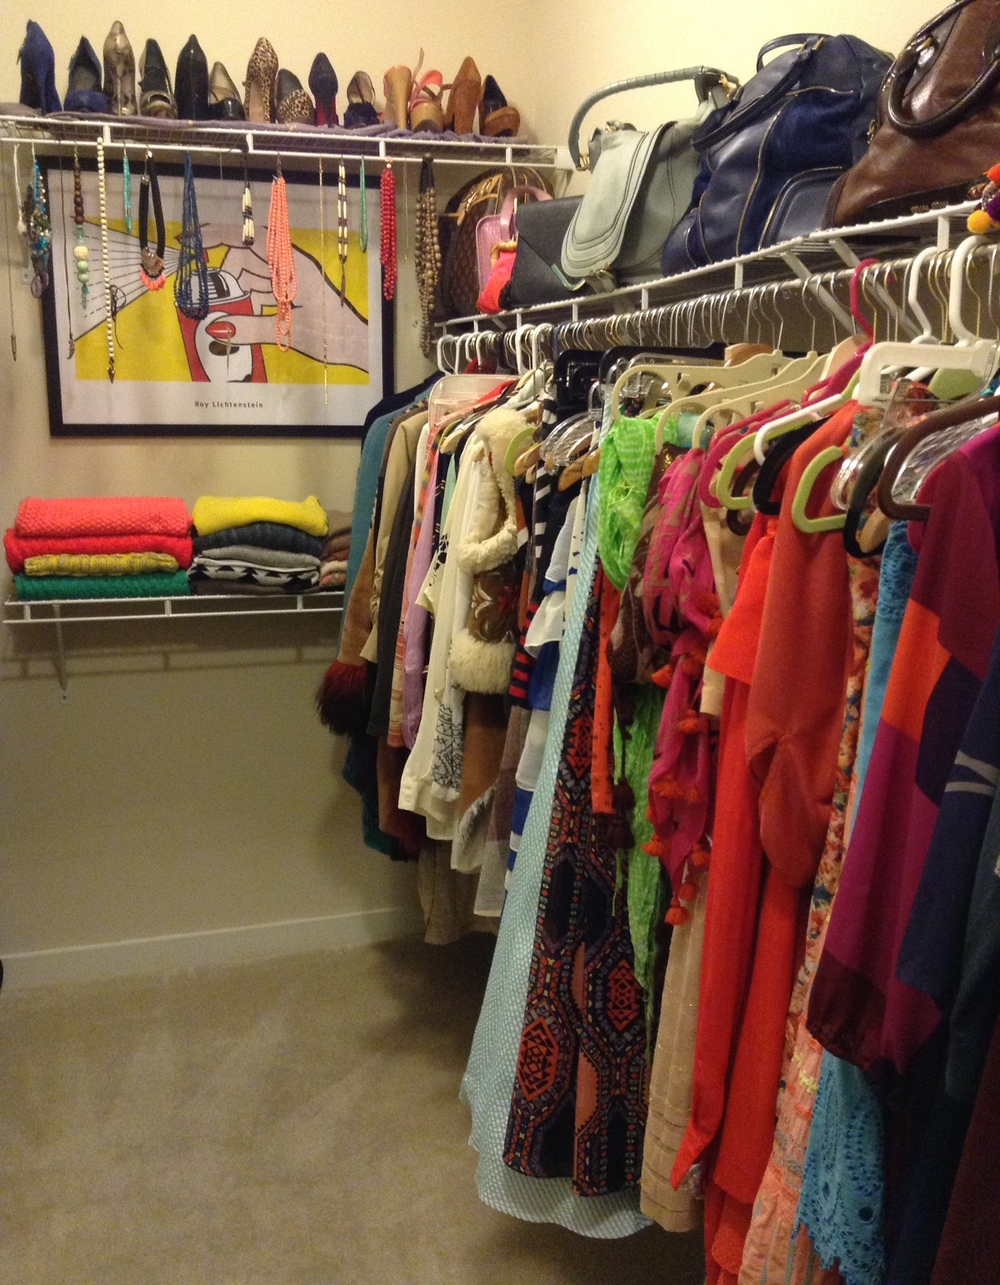 Raquel Greer Gordian offers a look into her own wardrobe organization.